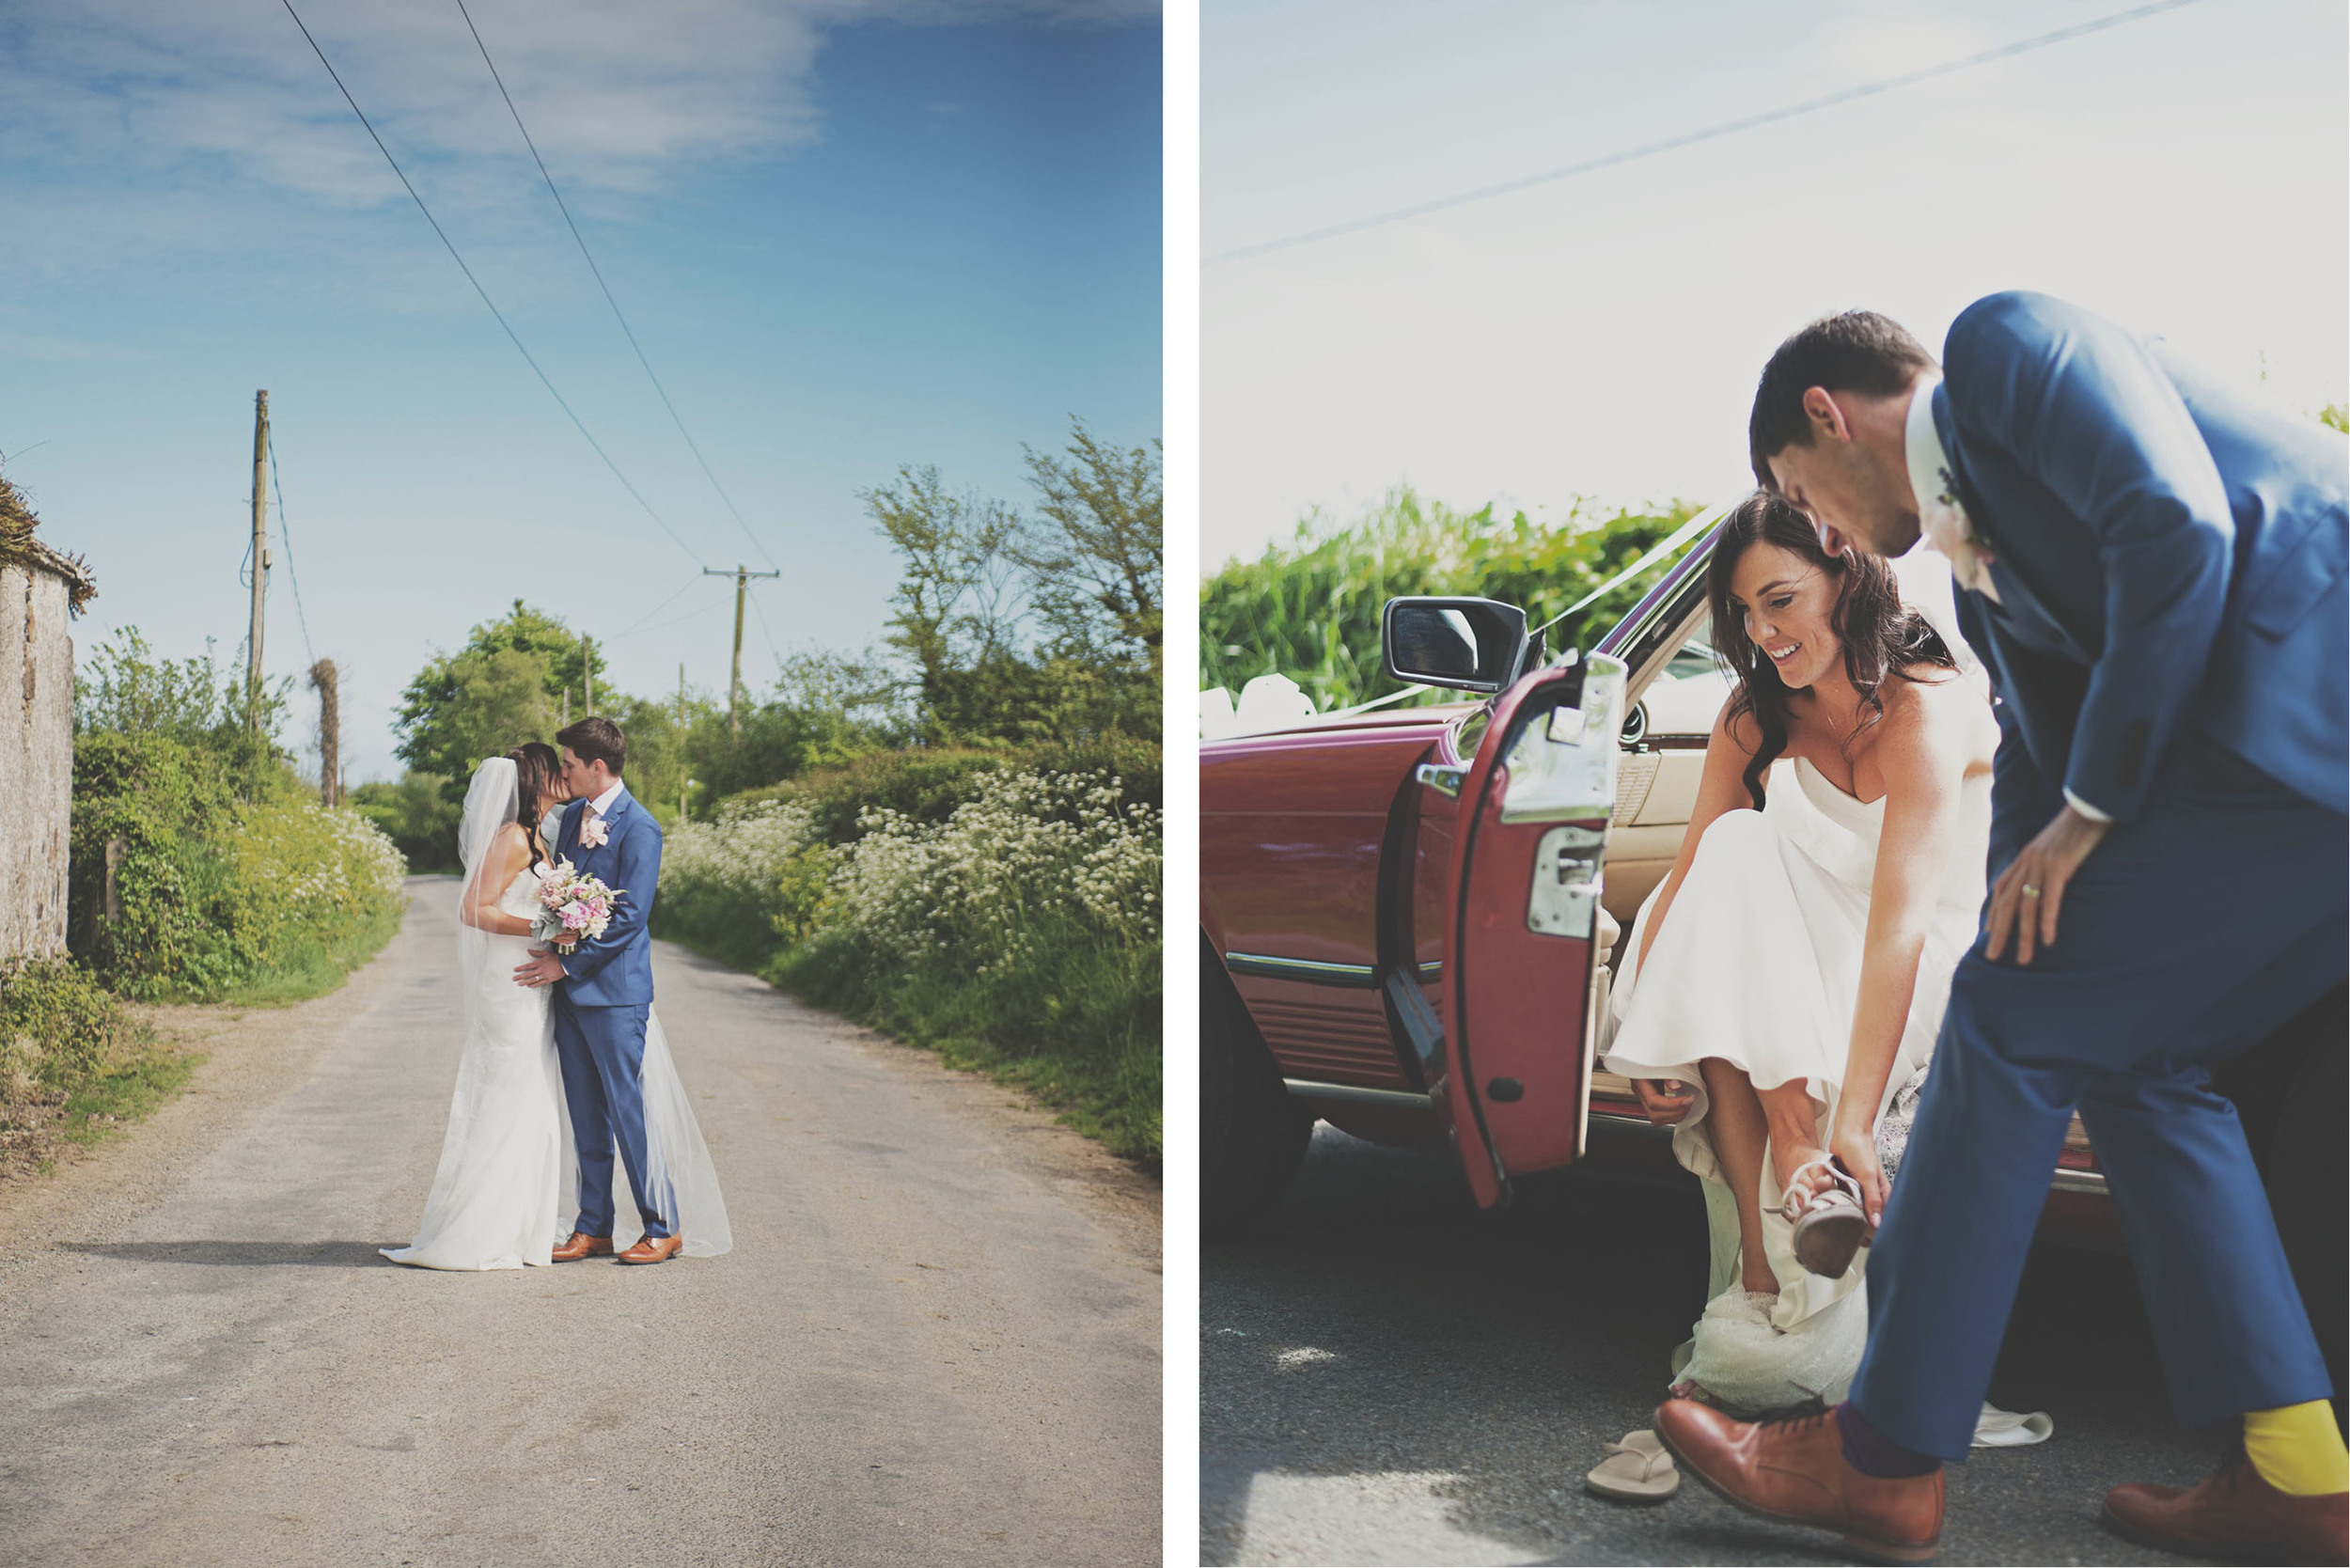 Julie & Matt's Seafield Wedding by Studio33weddings 074.jpg